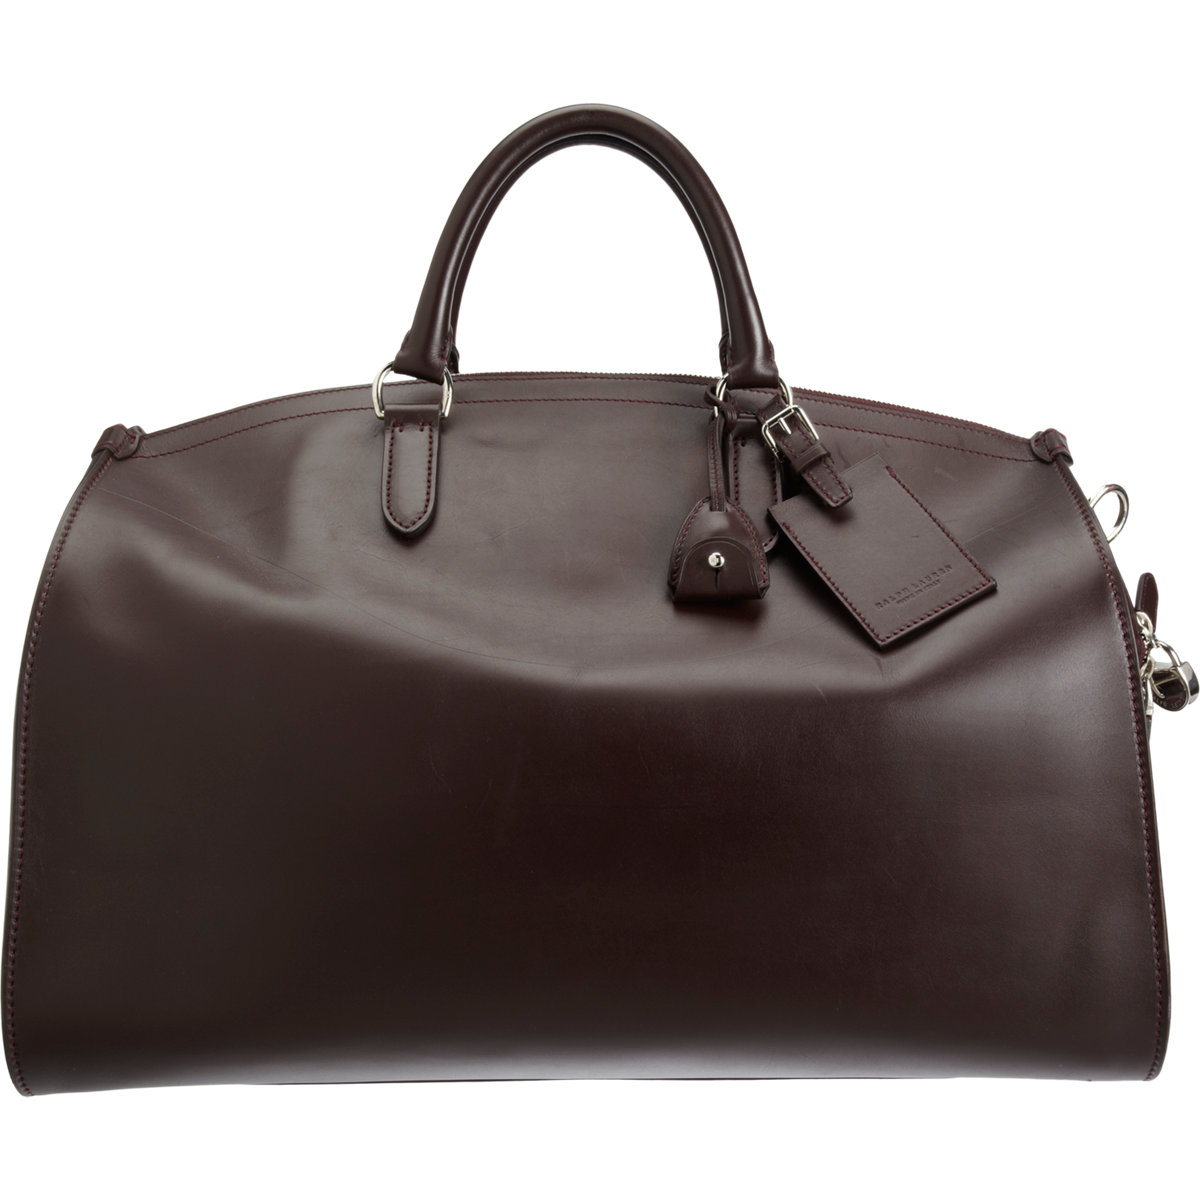 Most Expensive Bags For Men Top 10